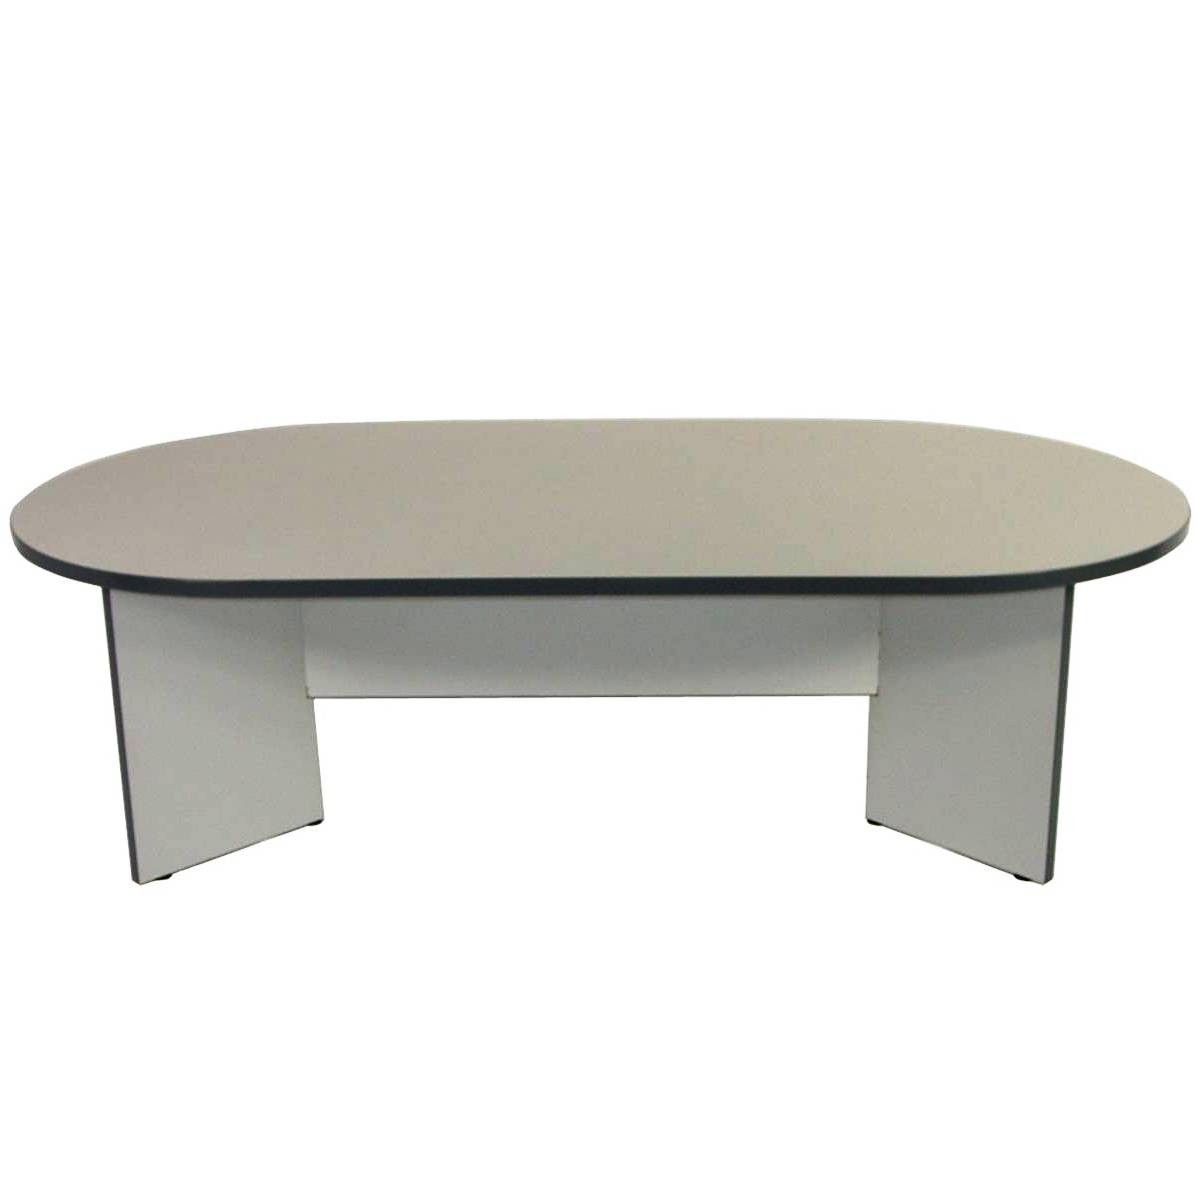 T4002 meeting boardroom table oxford grey top base 2400x1200